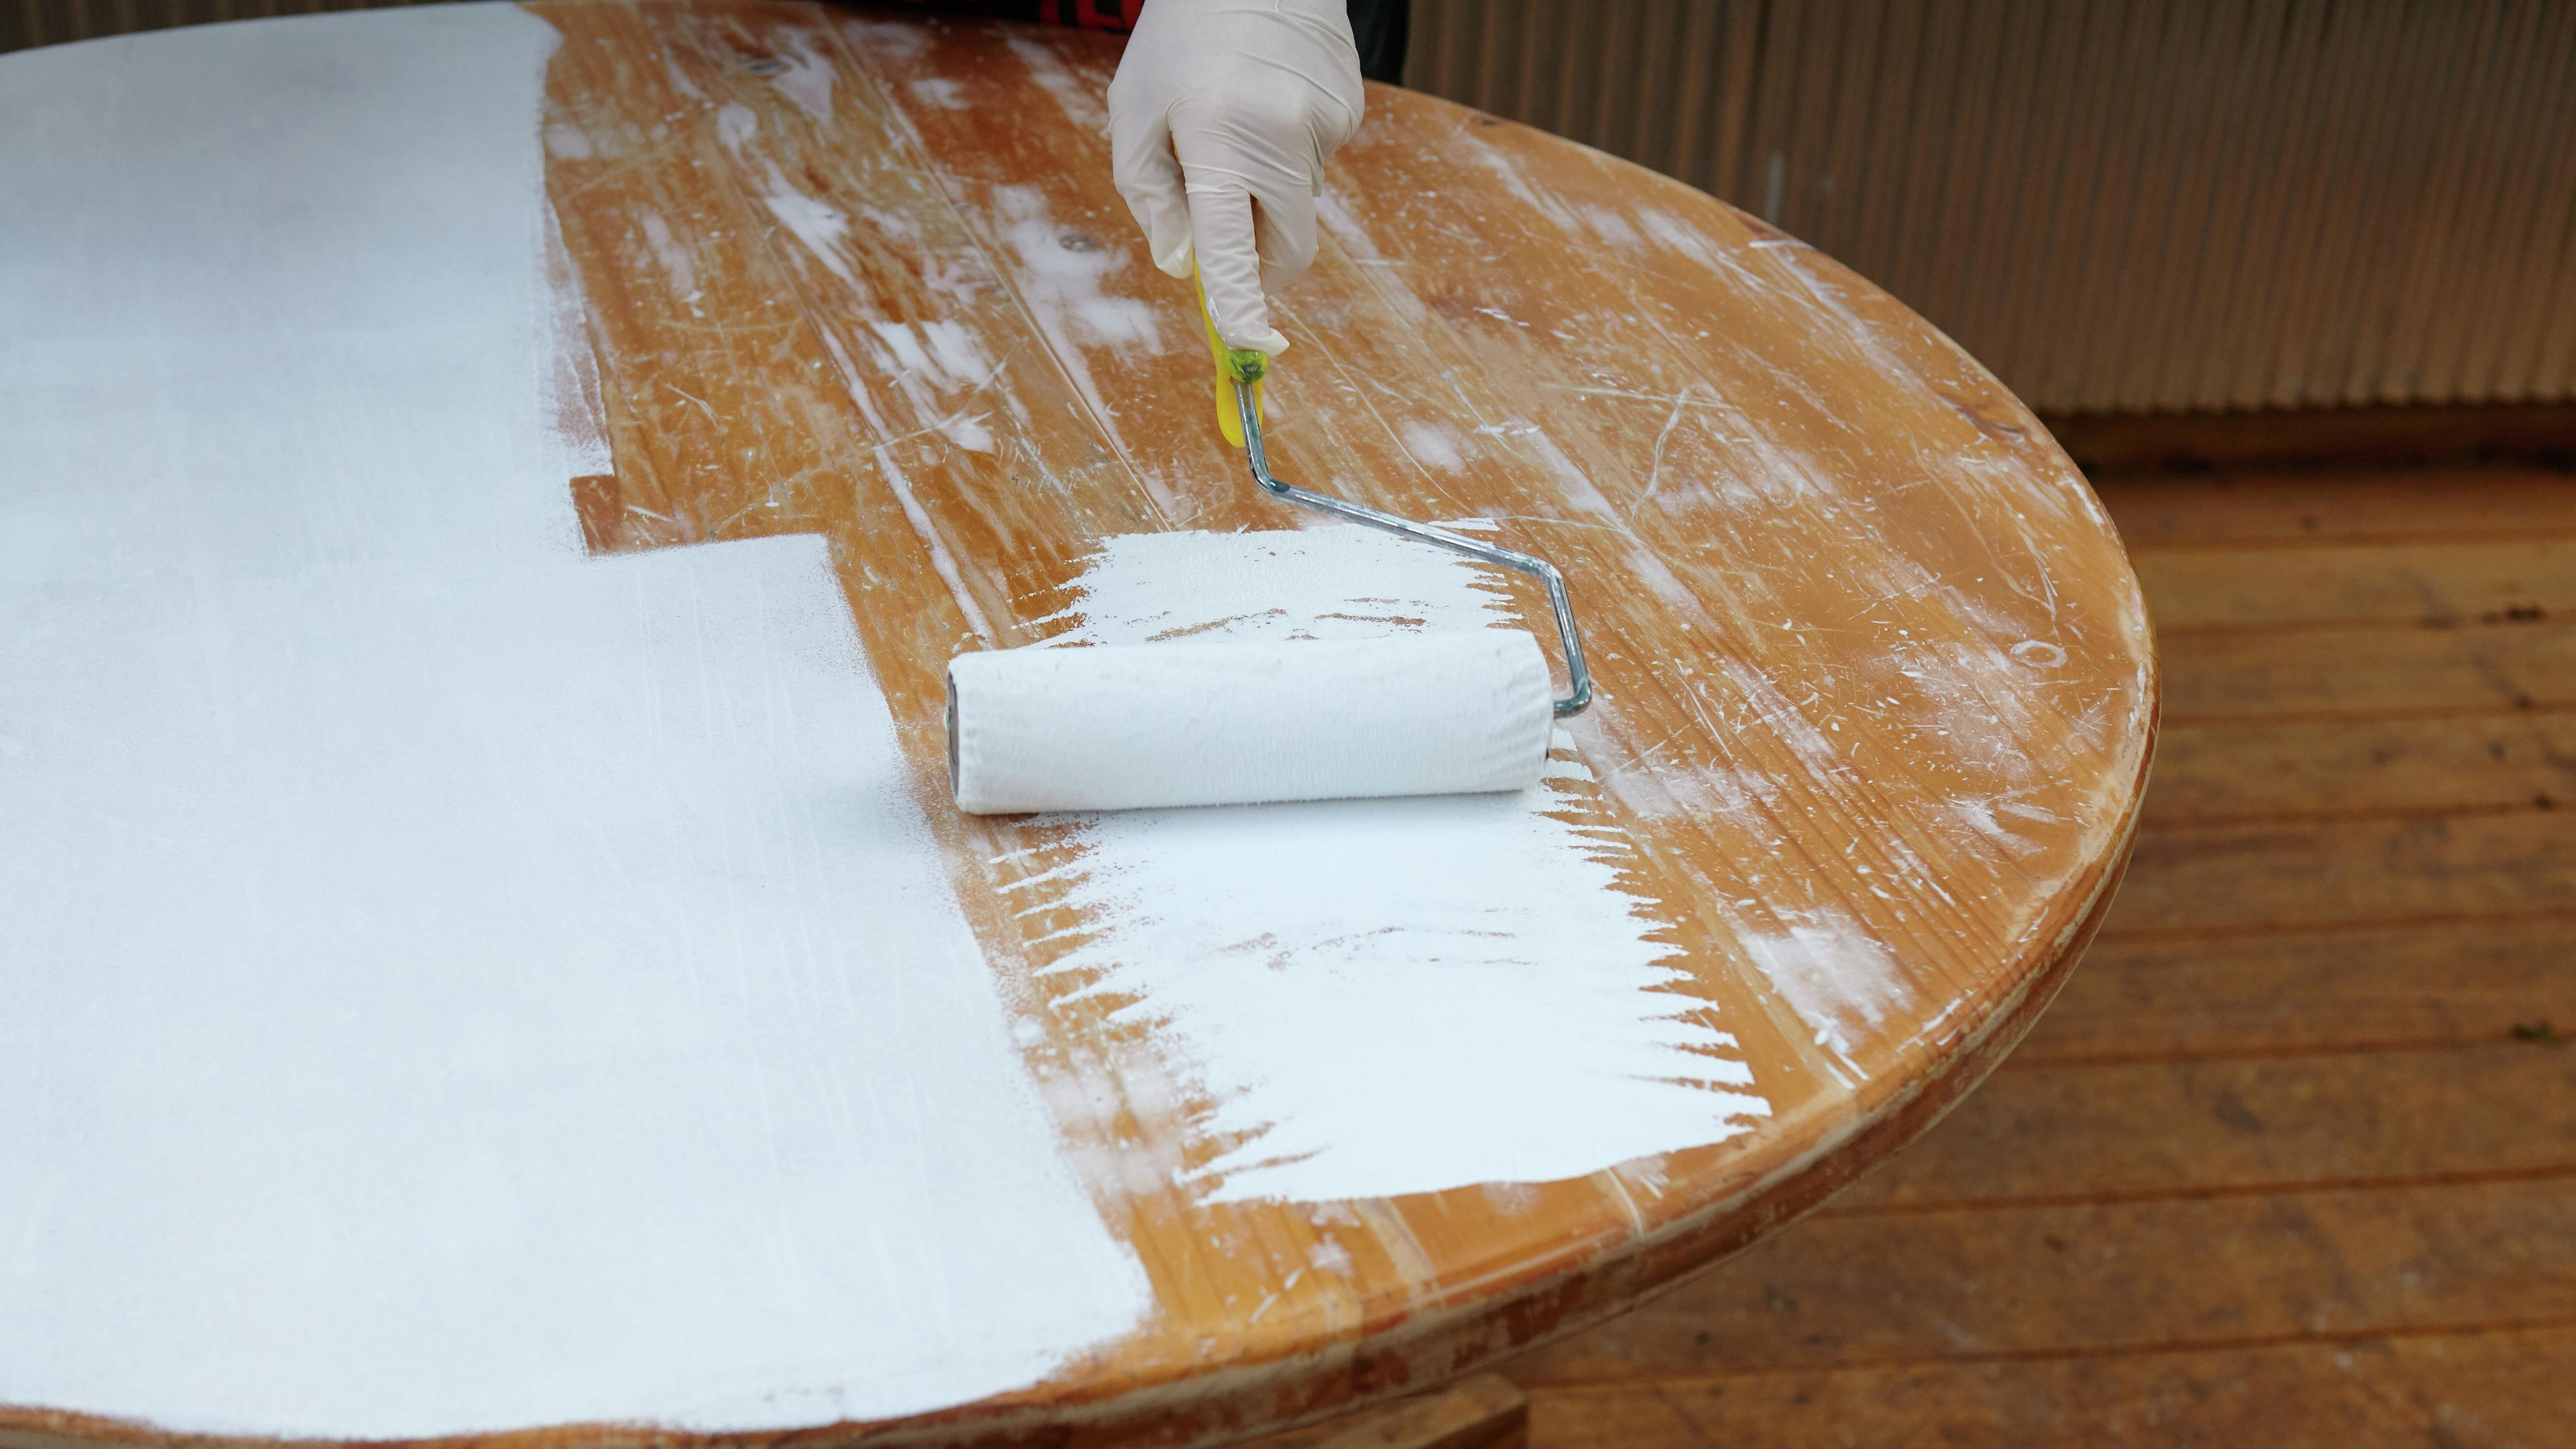 Person using roller to paint over varnished timber table.